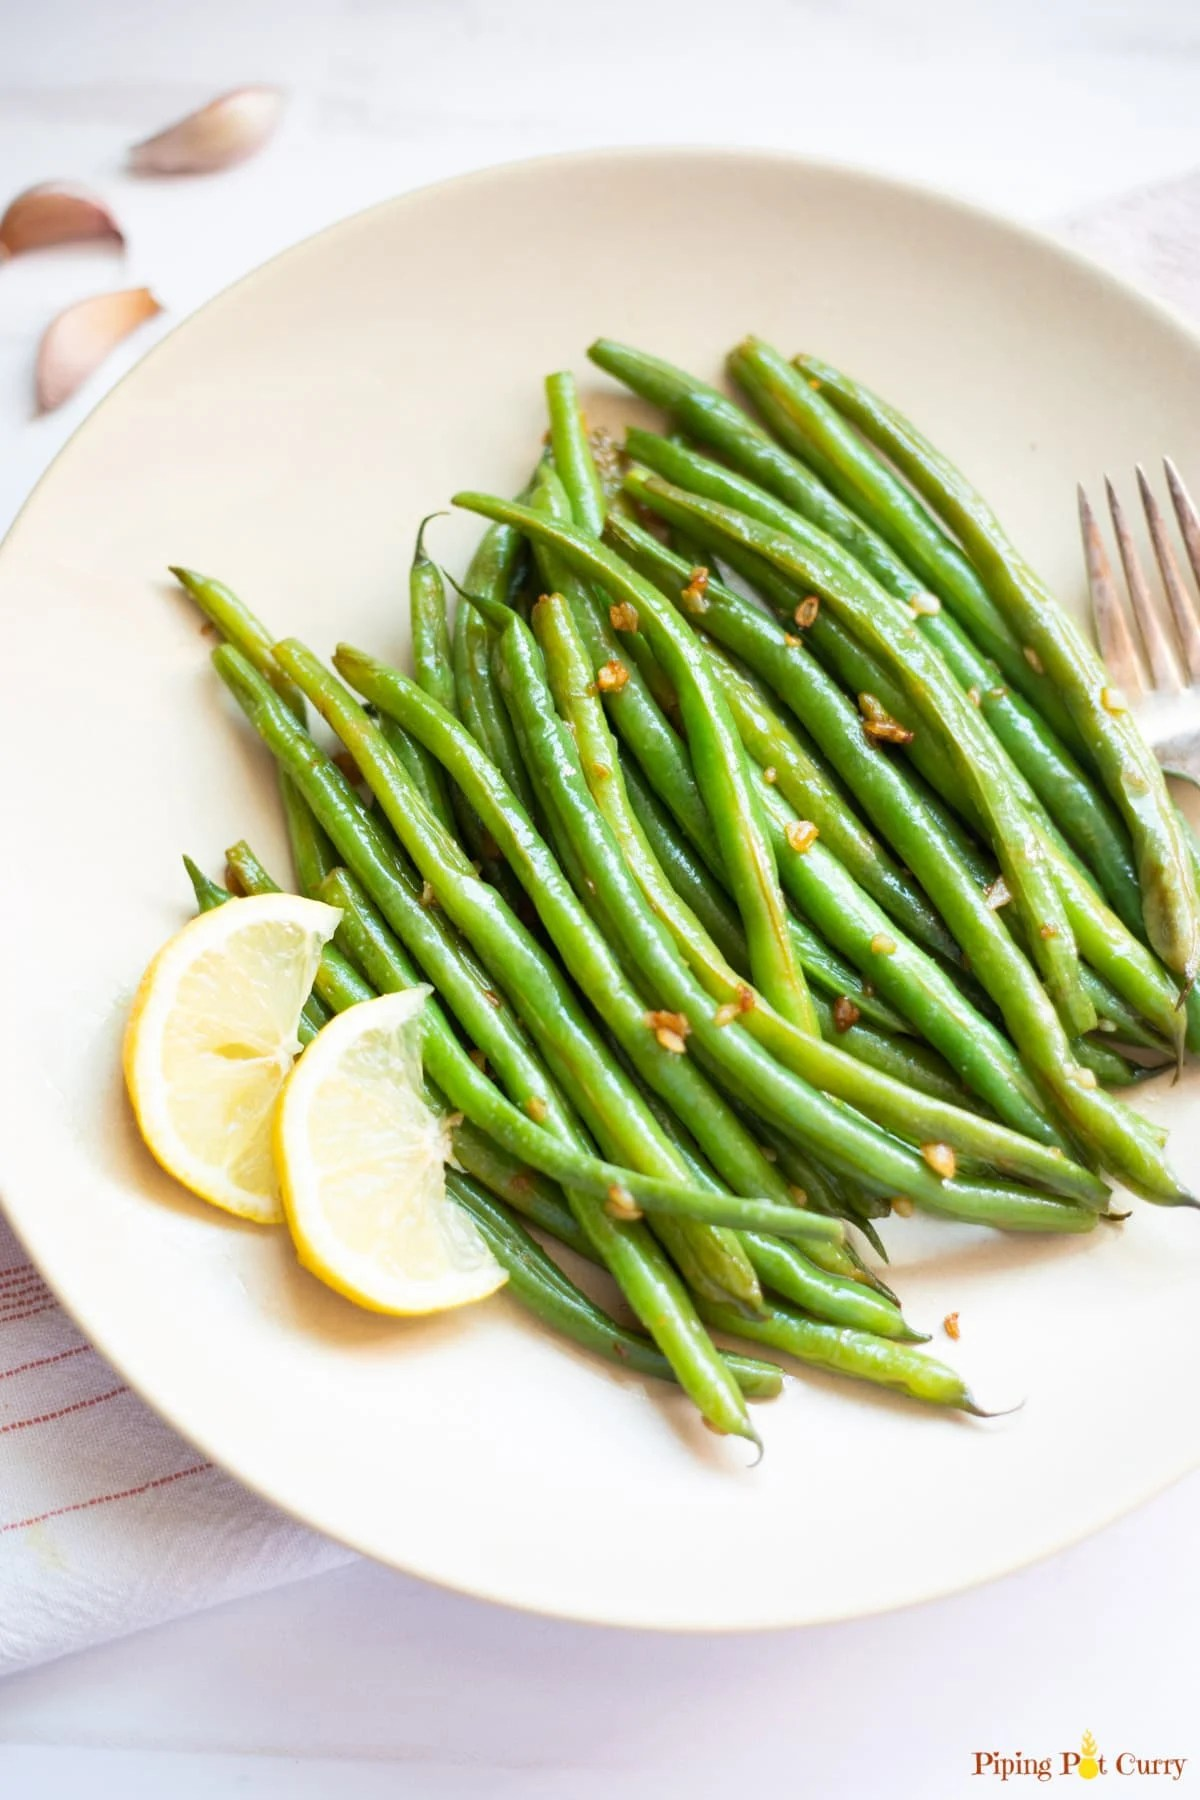 Lemon Garlic Green Beans in a plate with 2 pieces of sliced lemon